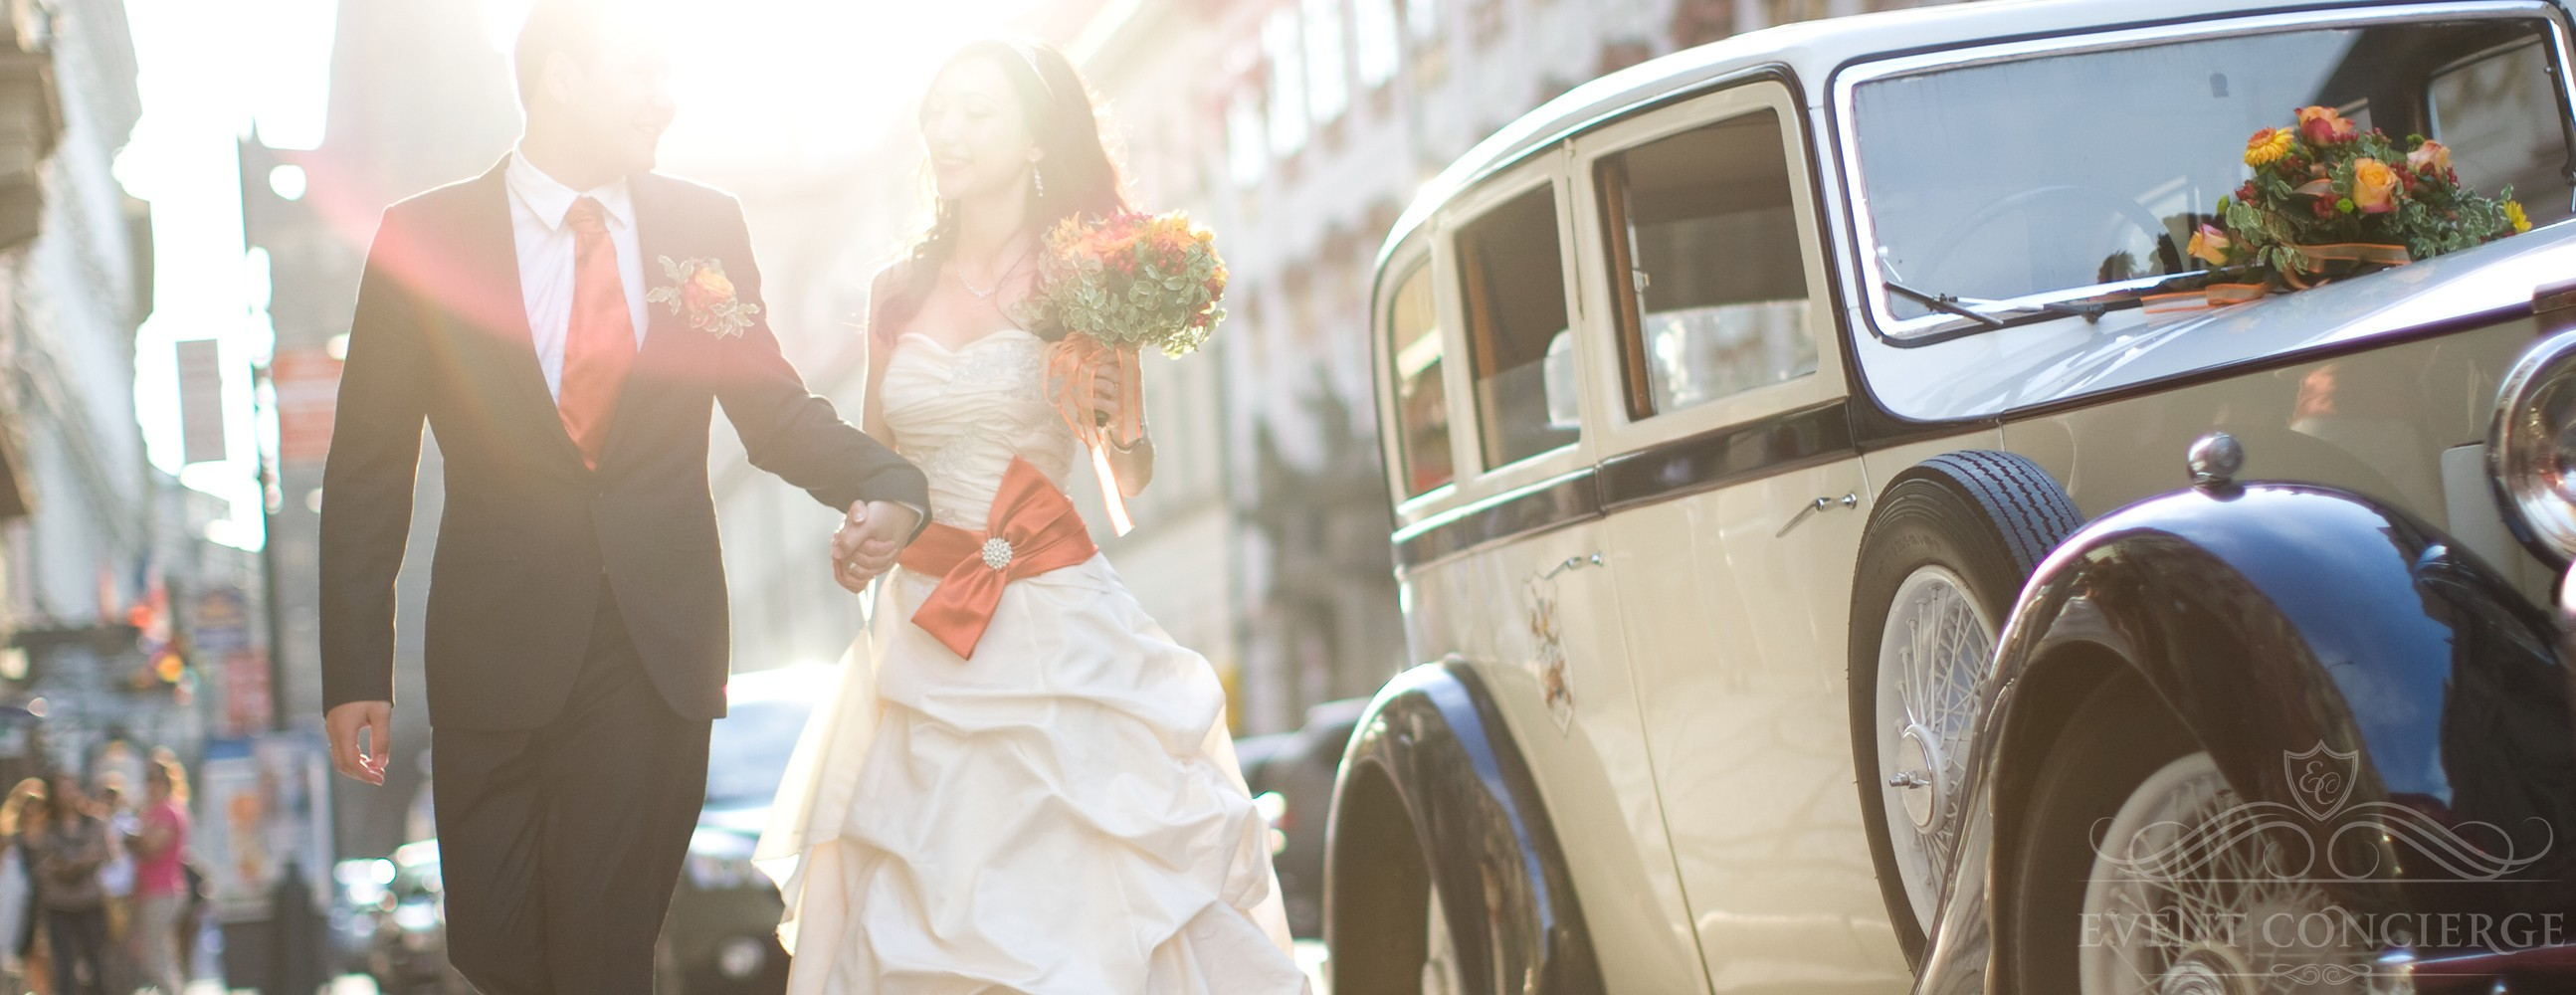 wedding-transfer-transportation-oldtimer-car-rental-in-Prague